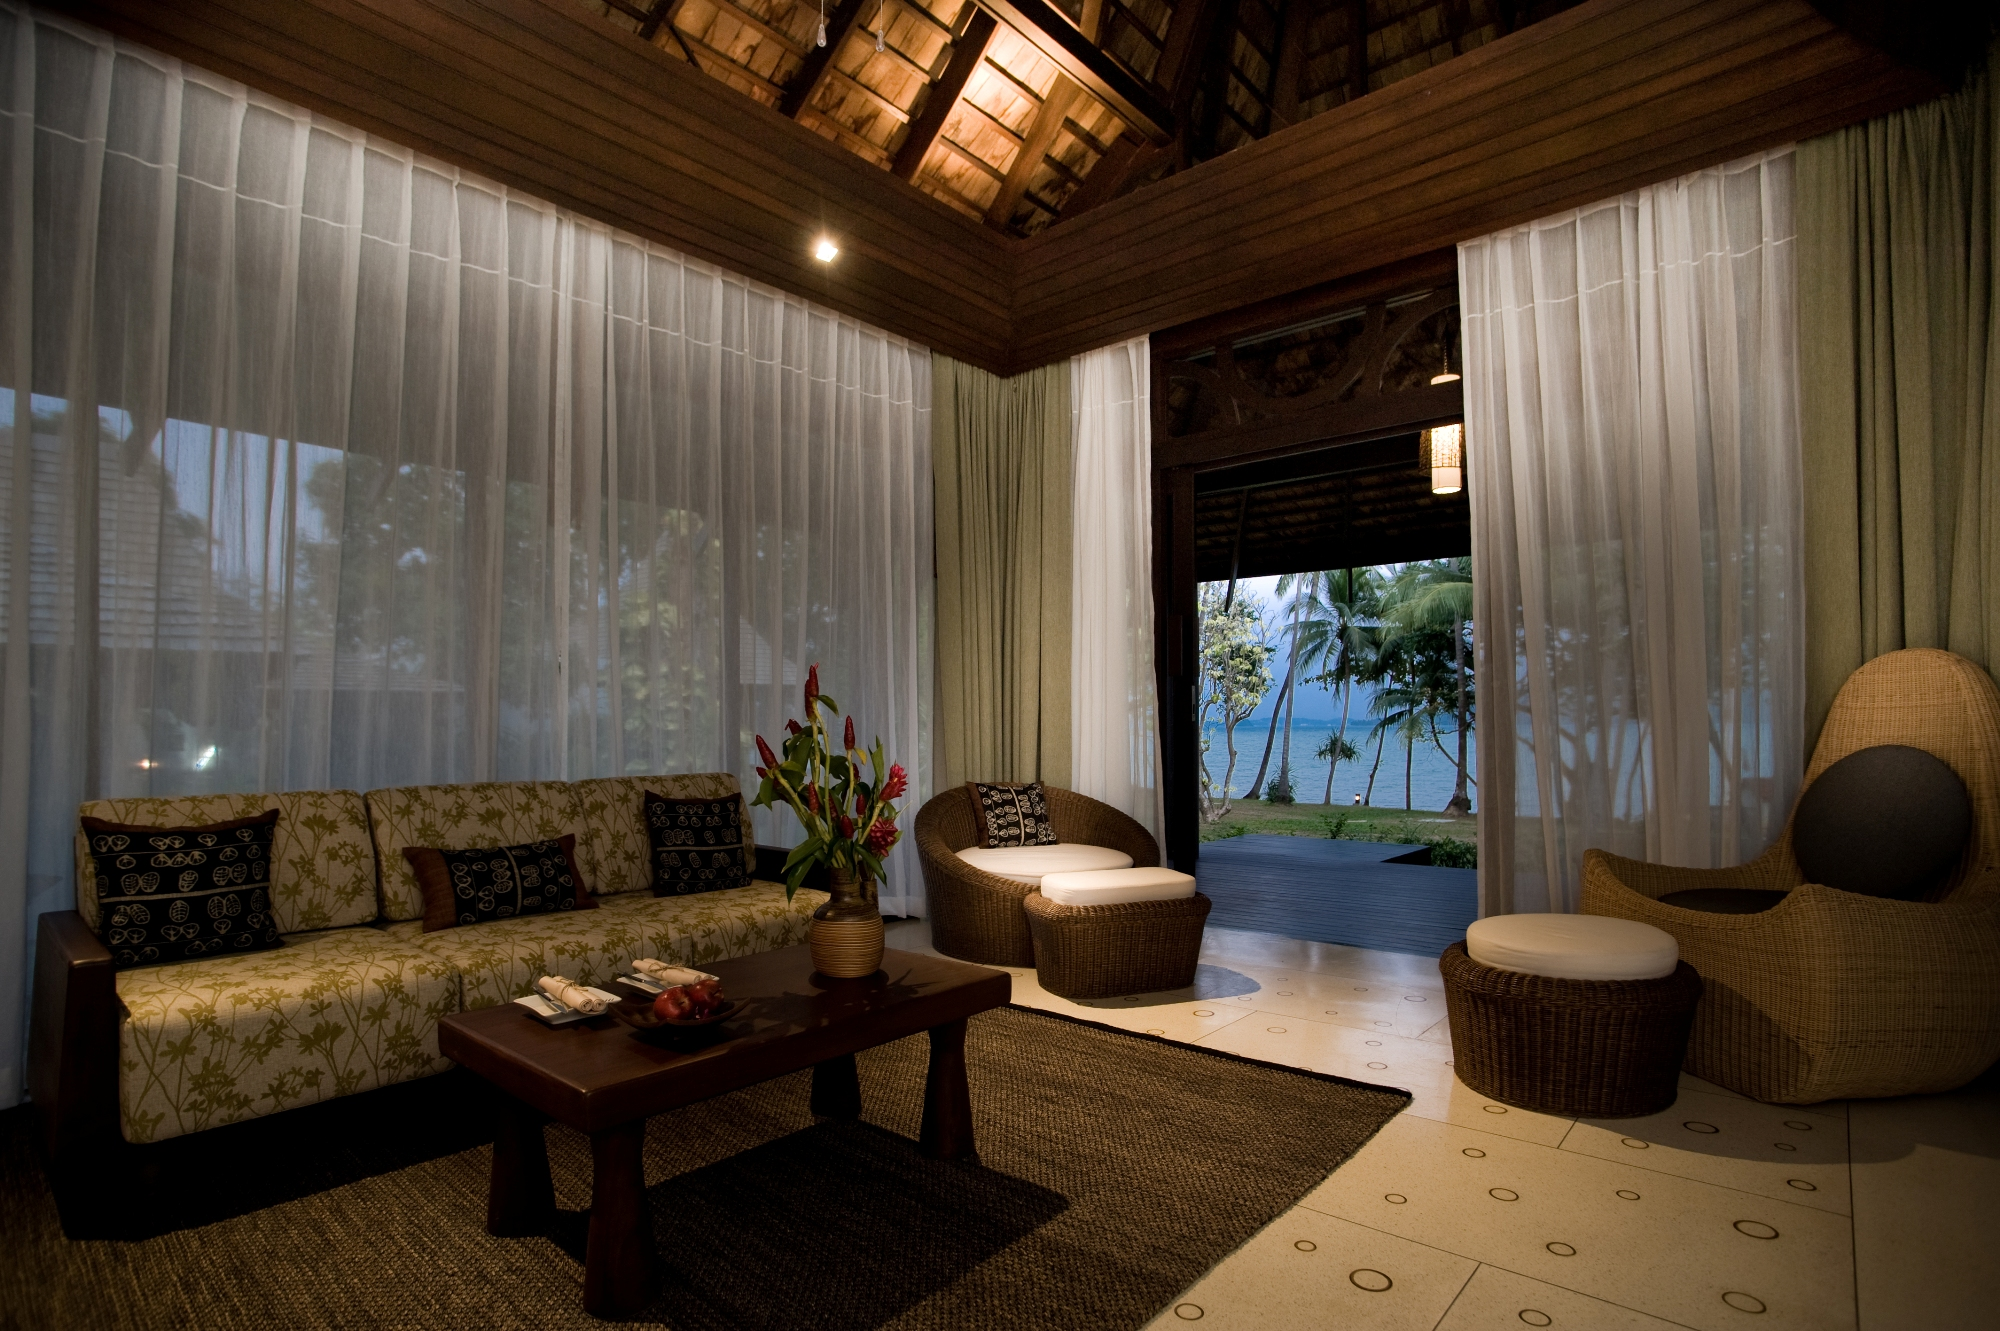 006_Vijitt_Pool_Villa-living_Room_The_Vijitt_Resort_Phuket